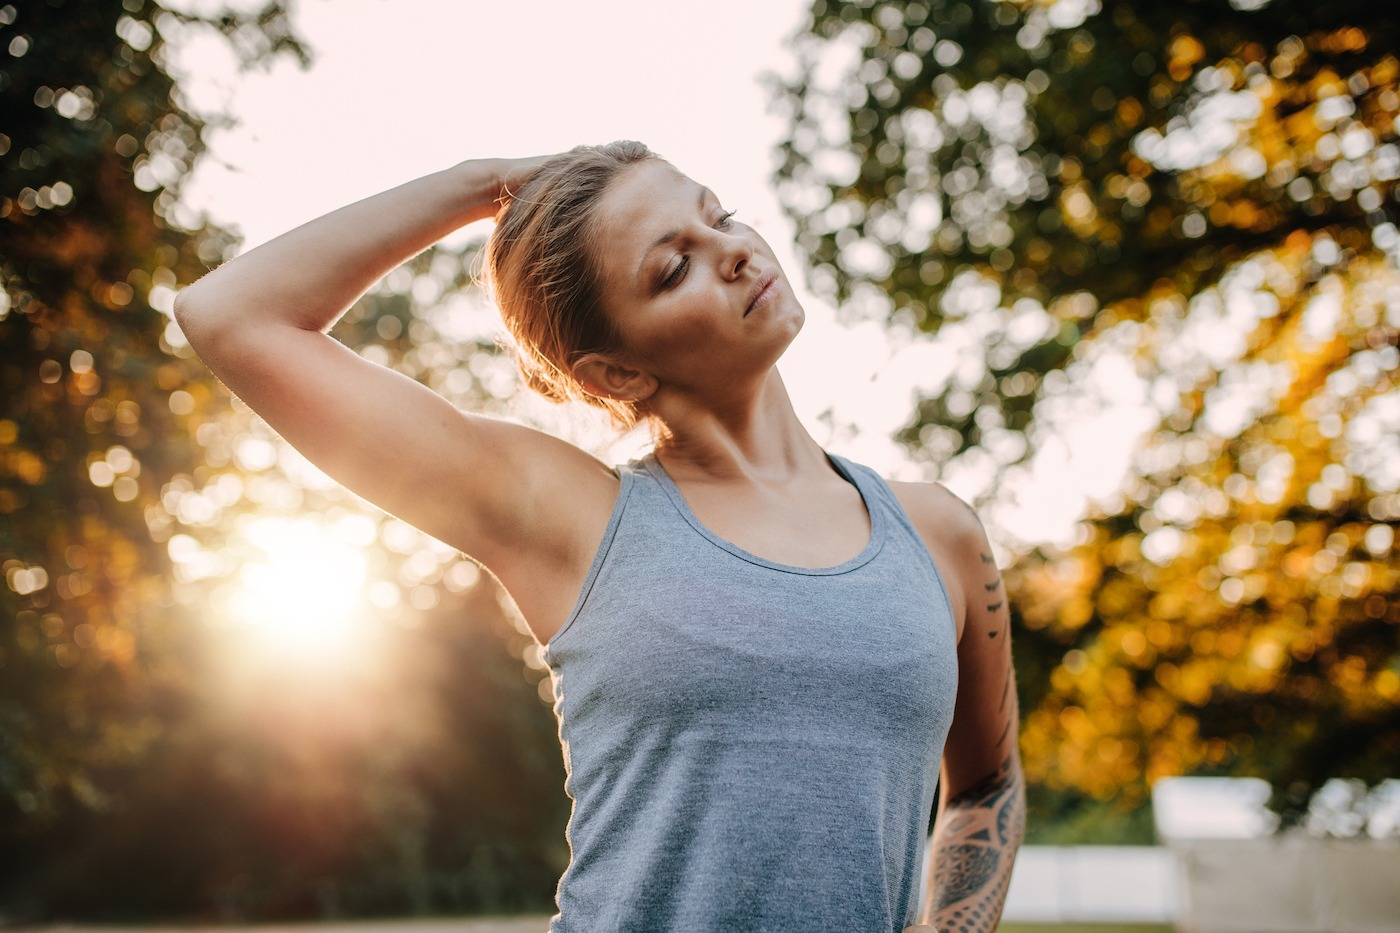 Thumbnail for Woke up with a stiff neck? These 4 pro-approved stretches should help loosen it up